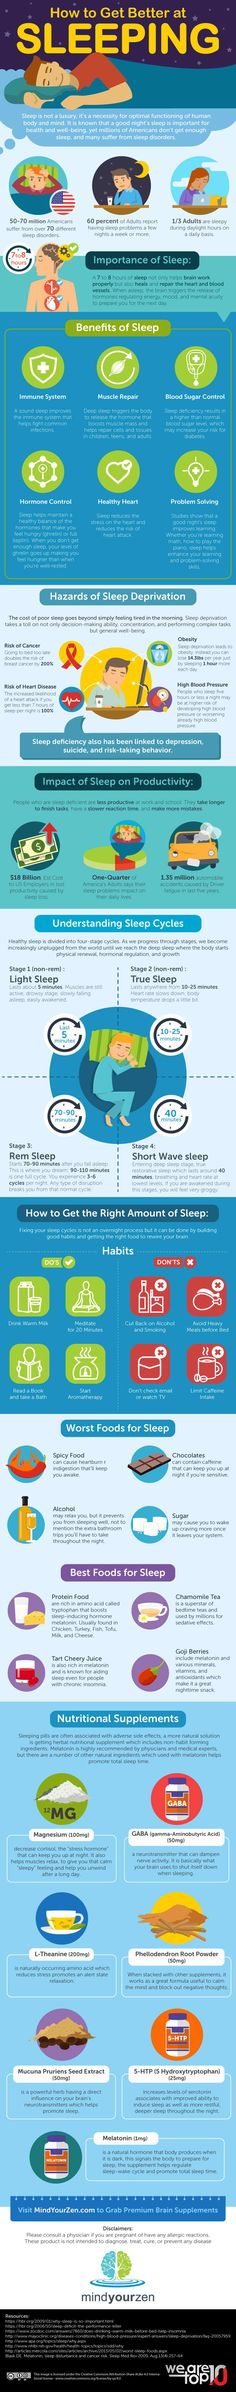 How to Get Better at Sleeping Infographic - https://elearninginfographics.com/get-better-sleeping-infographic/